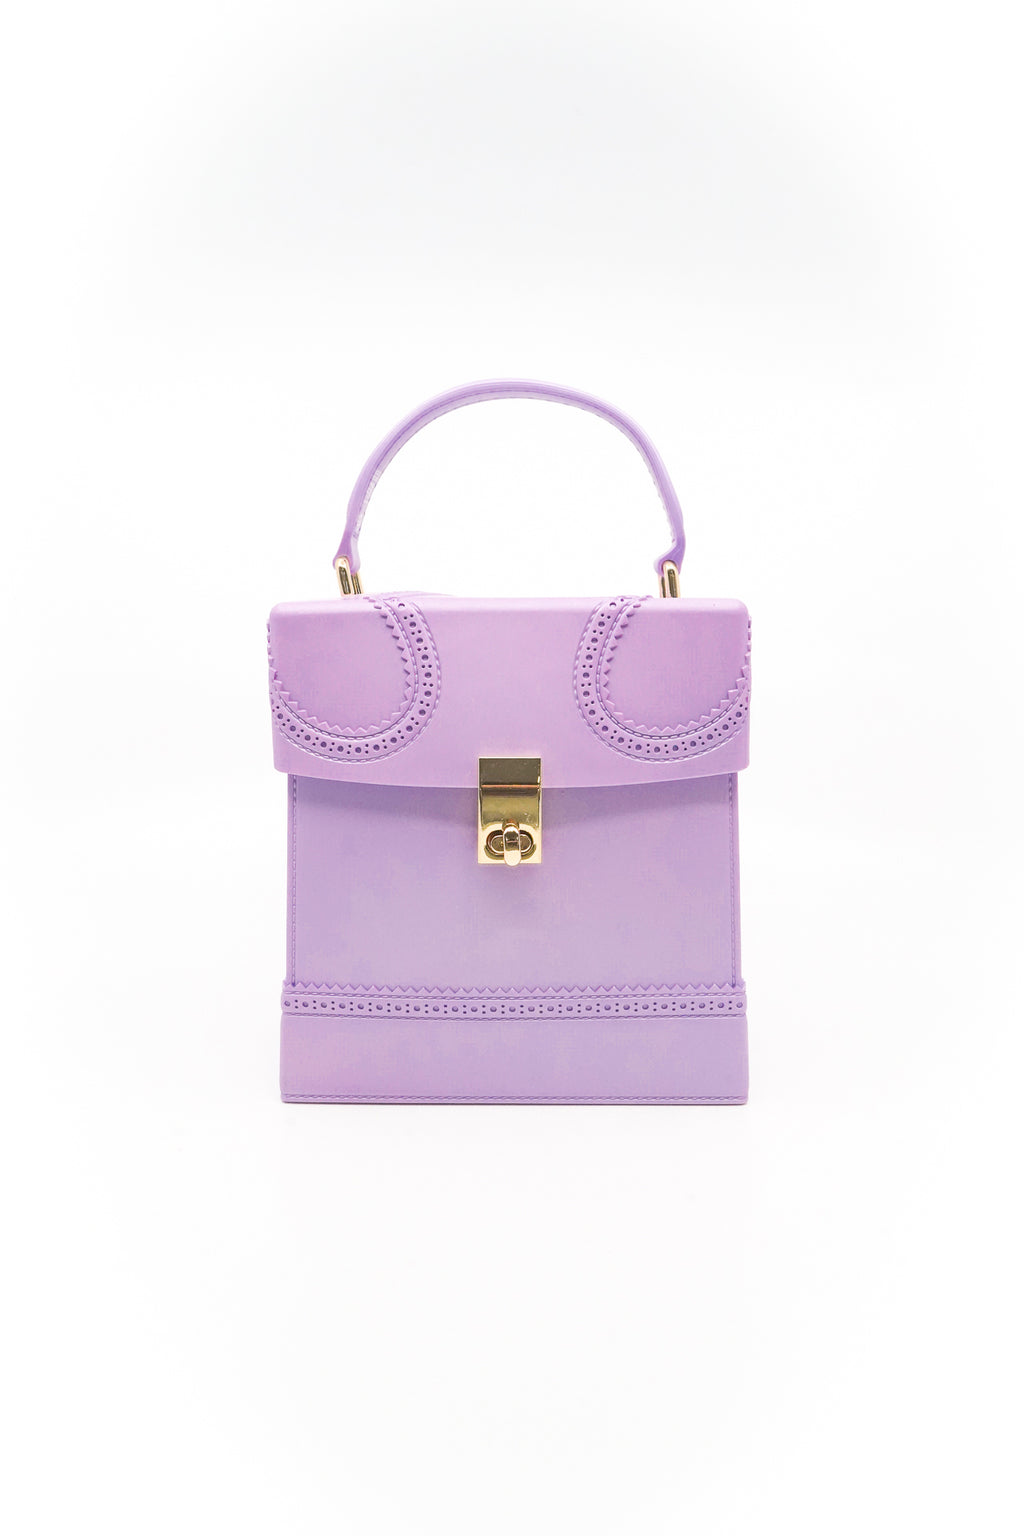 Square Box Jelly Handbag with Handle and Strap in Lavender - Fashion House USA